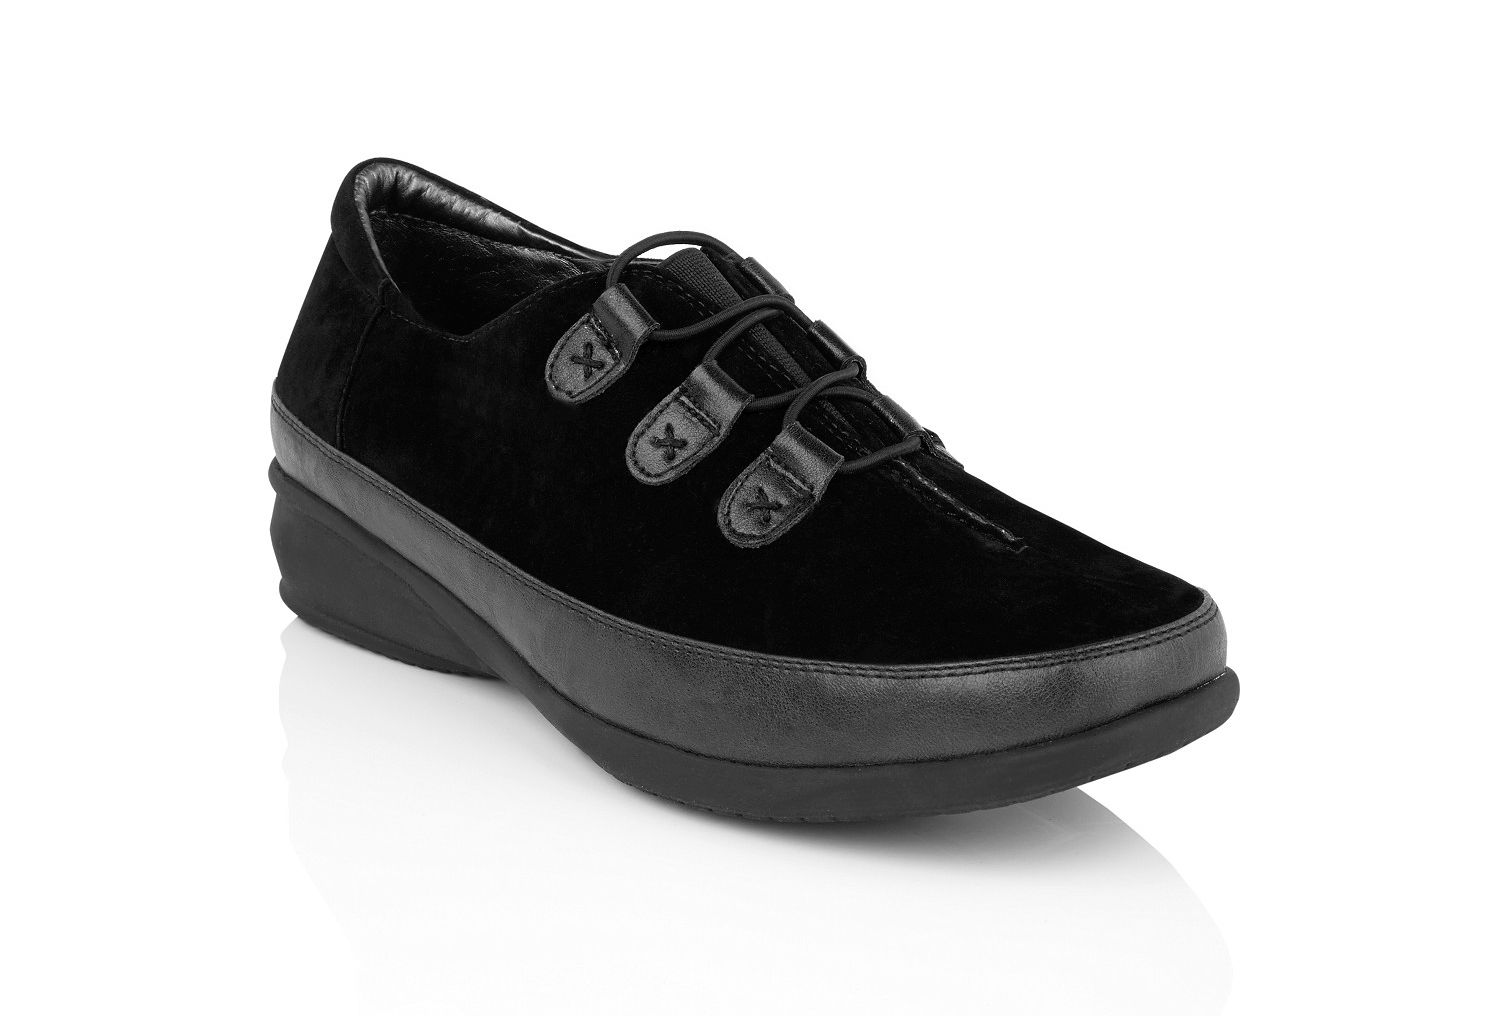 Black suedette trainer